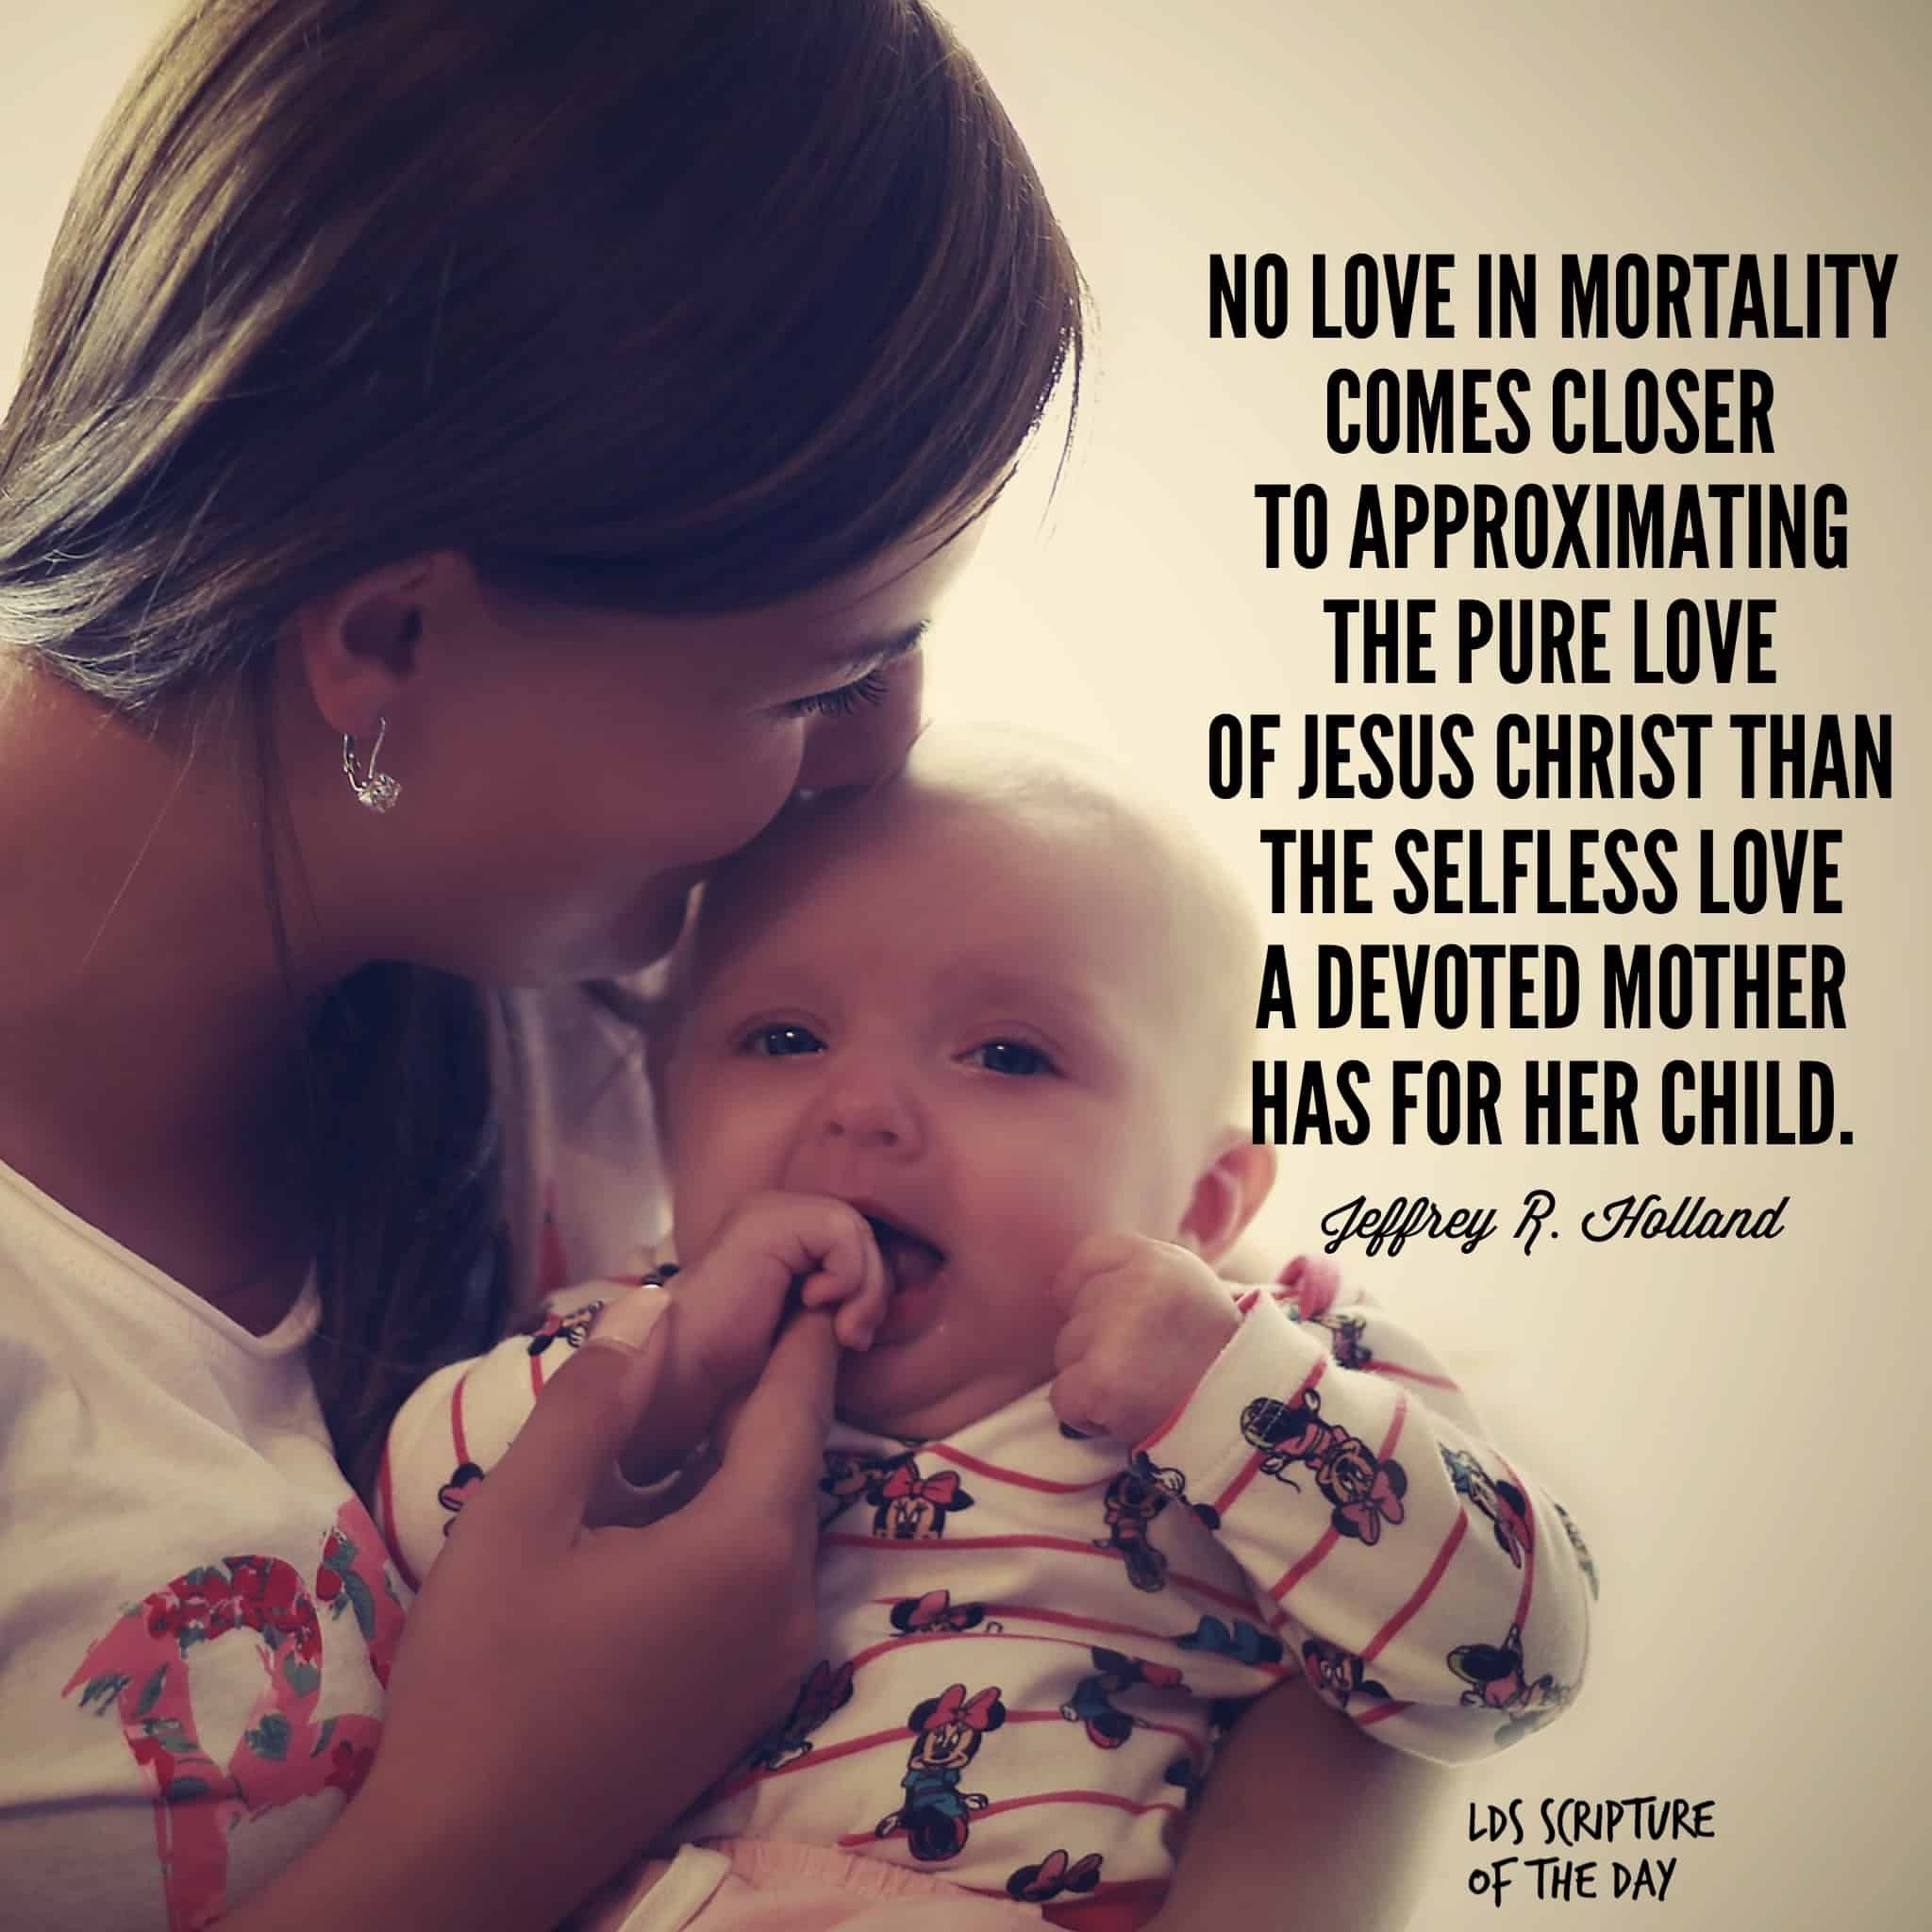 No love in mortality comes closer to approximating the pure love of Jesus Christ than the selfless love a devoted mother has for her child. —Jeffrey R. Holland